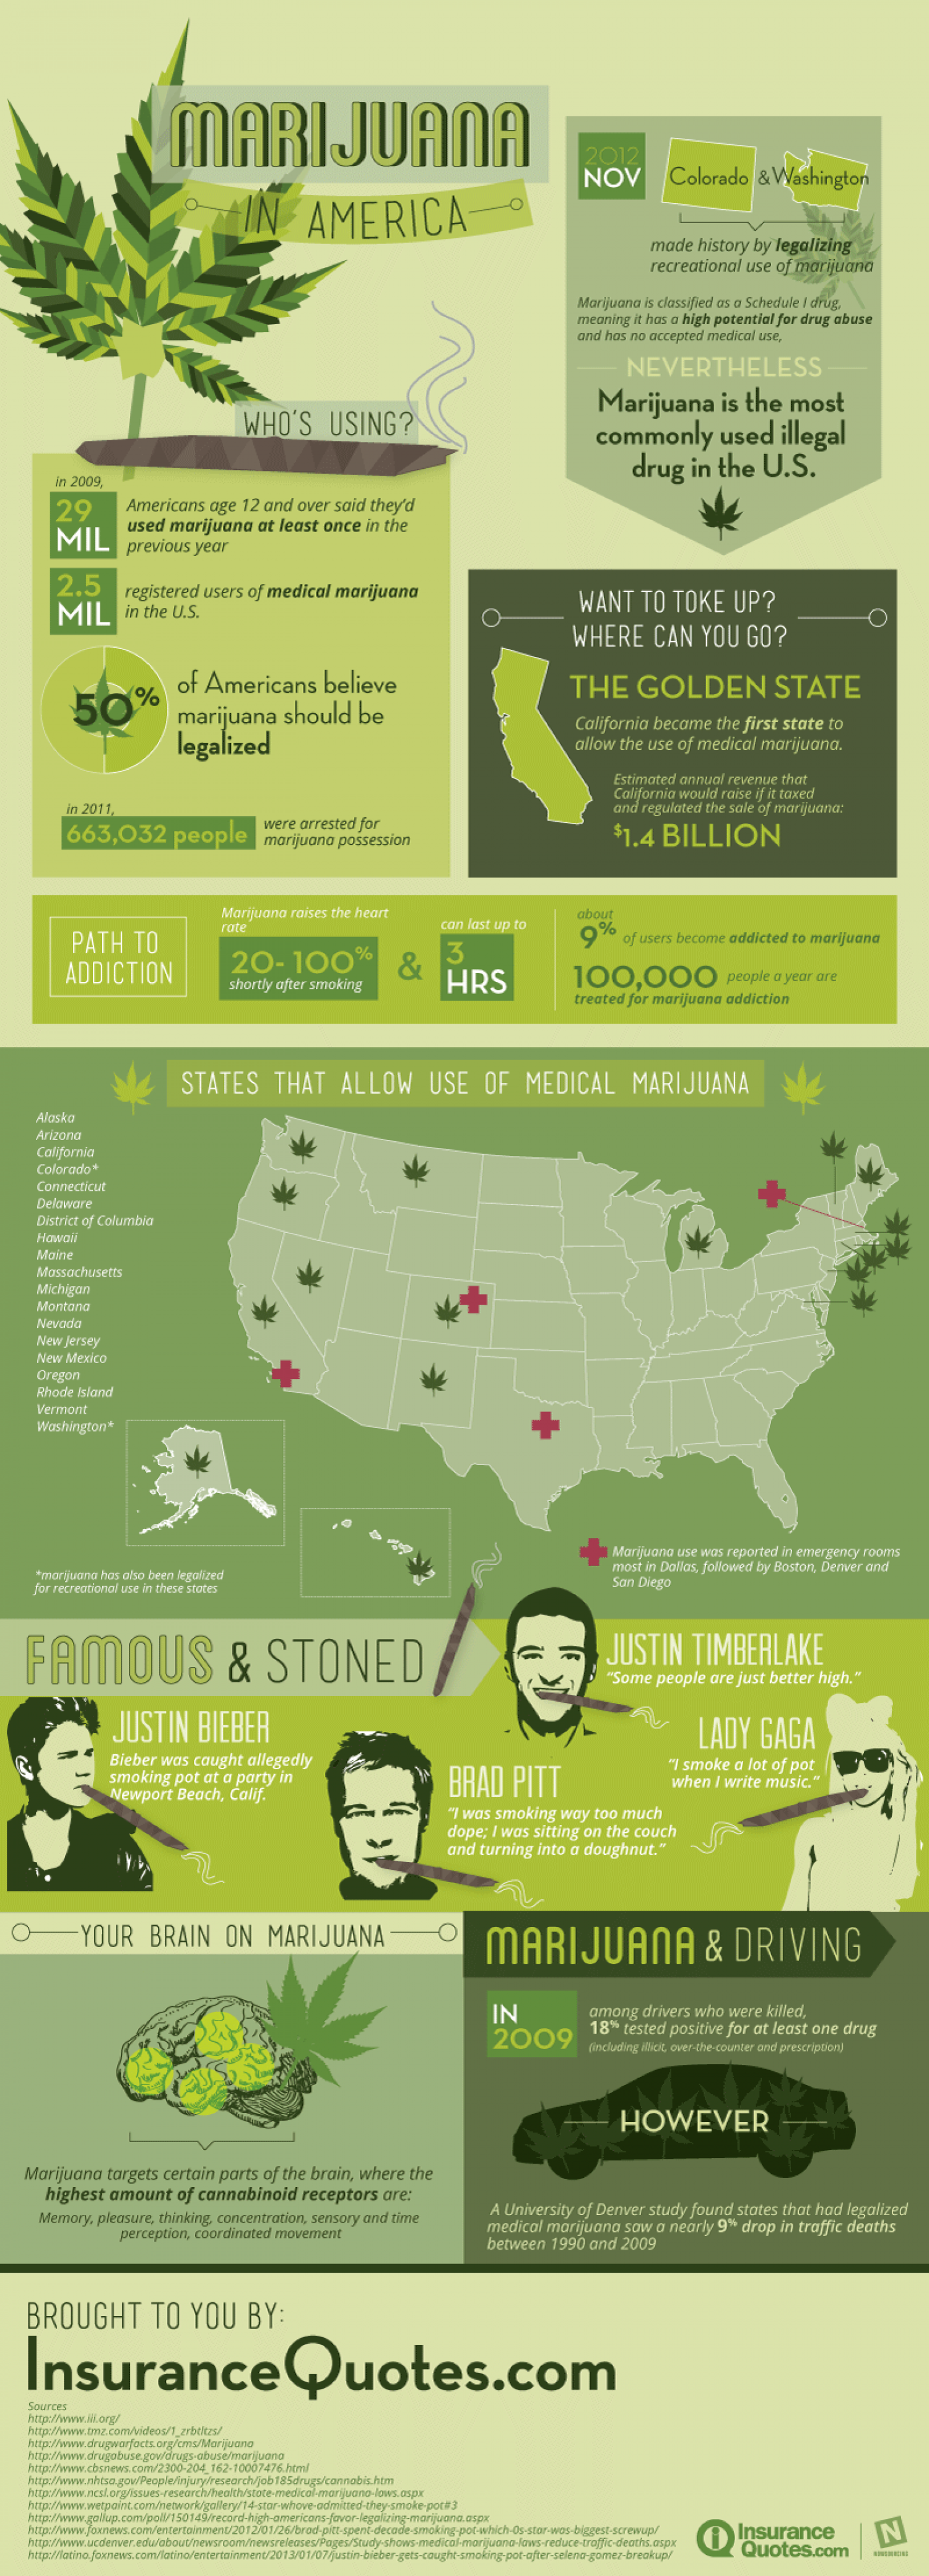 Marijuana in America Infographic